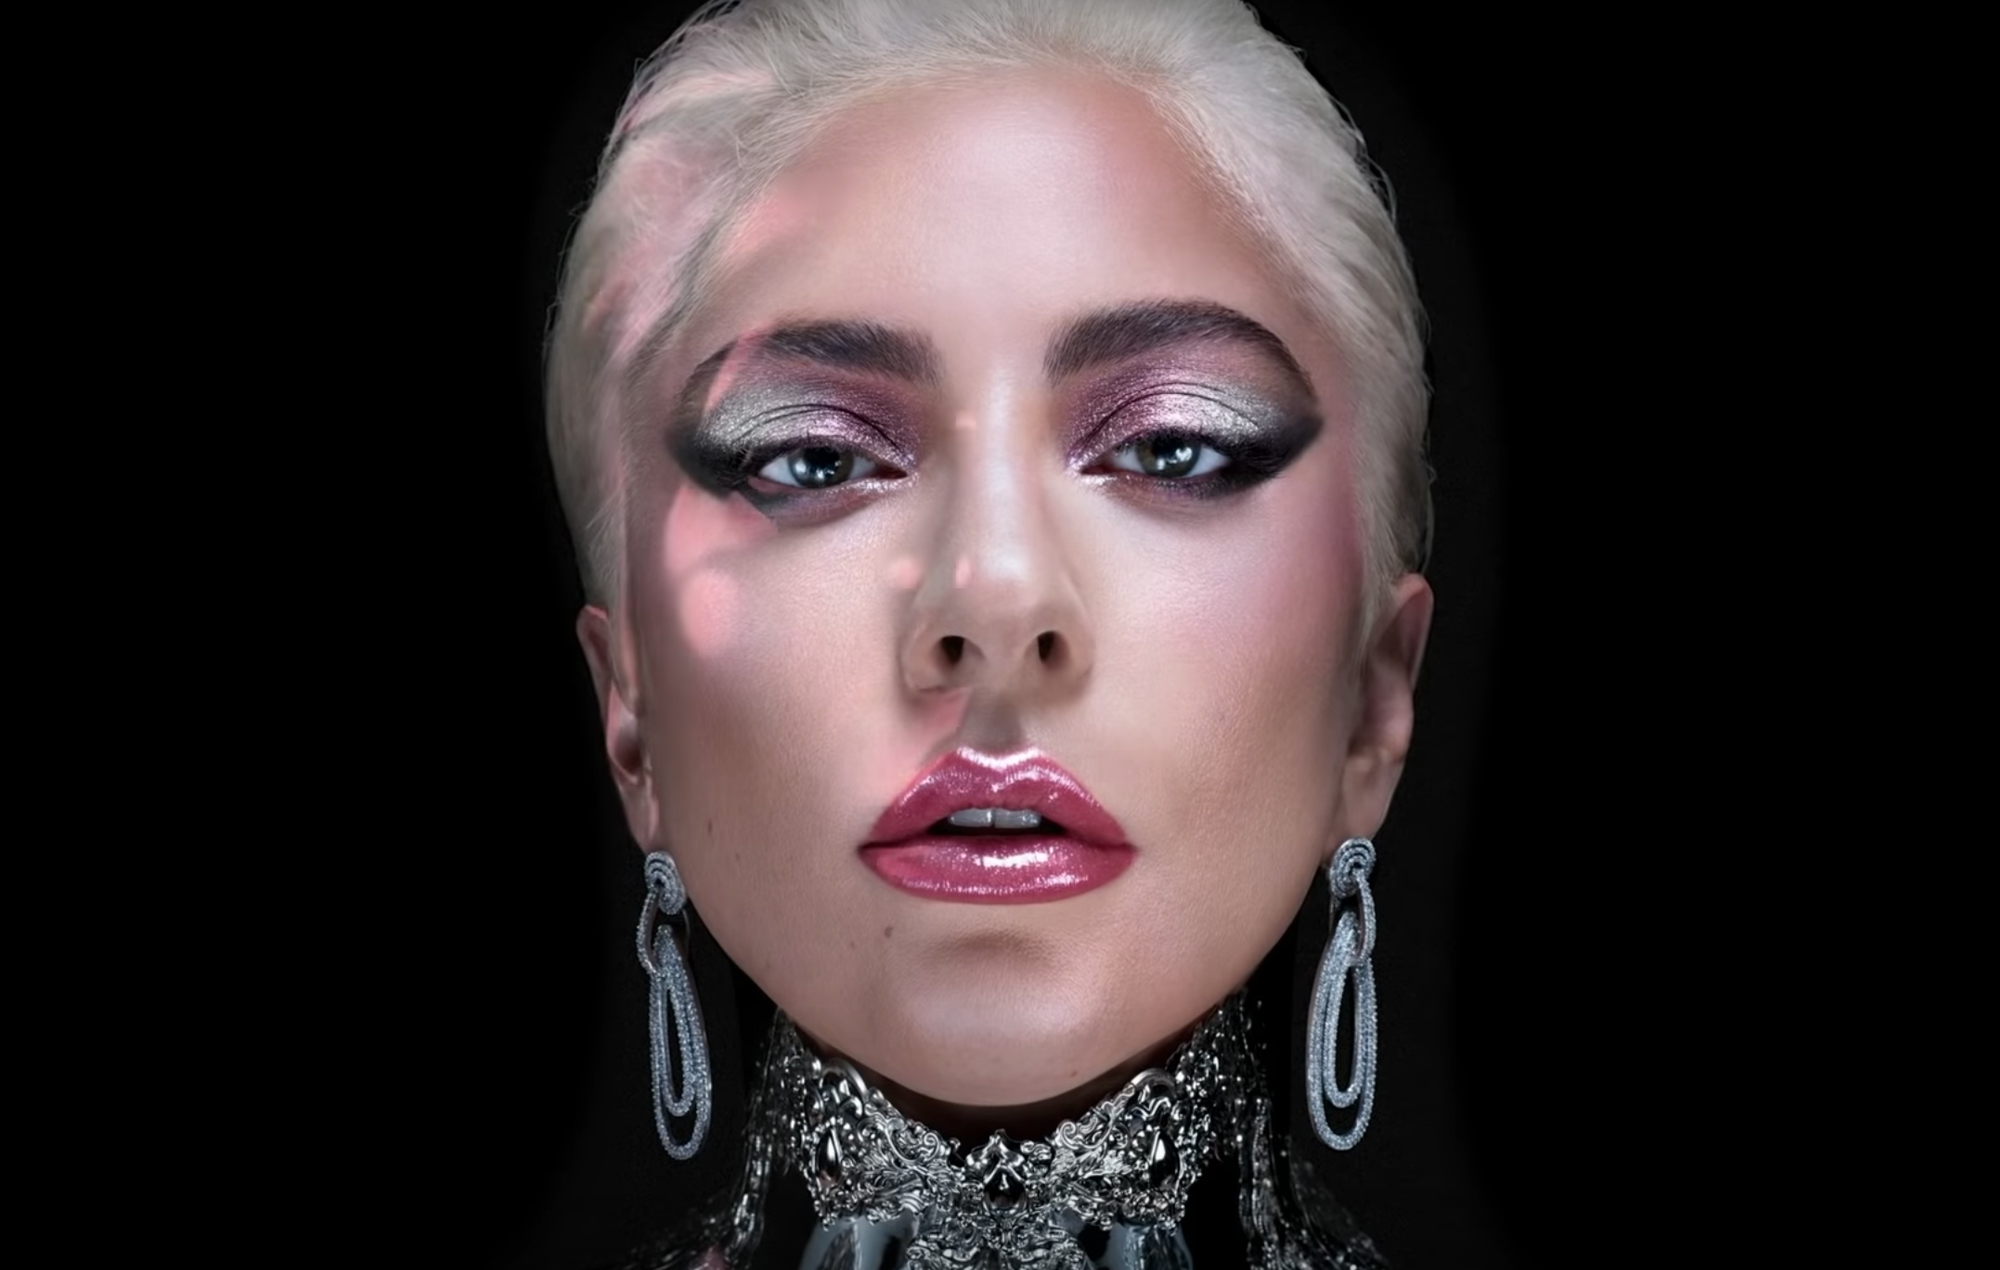 'Stupid Love': Lady Gaga heads back to the dancefloor with vibrant electro-pop banger